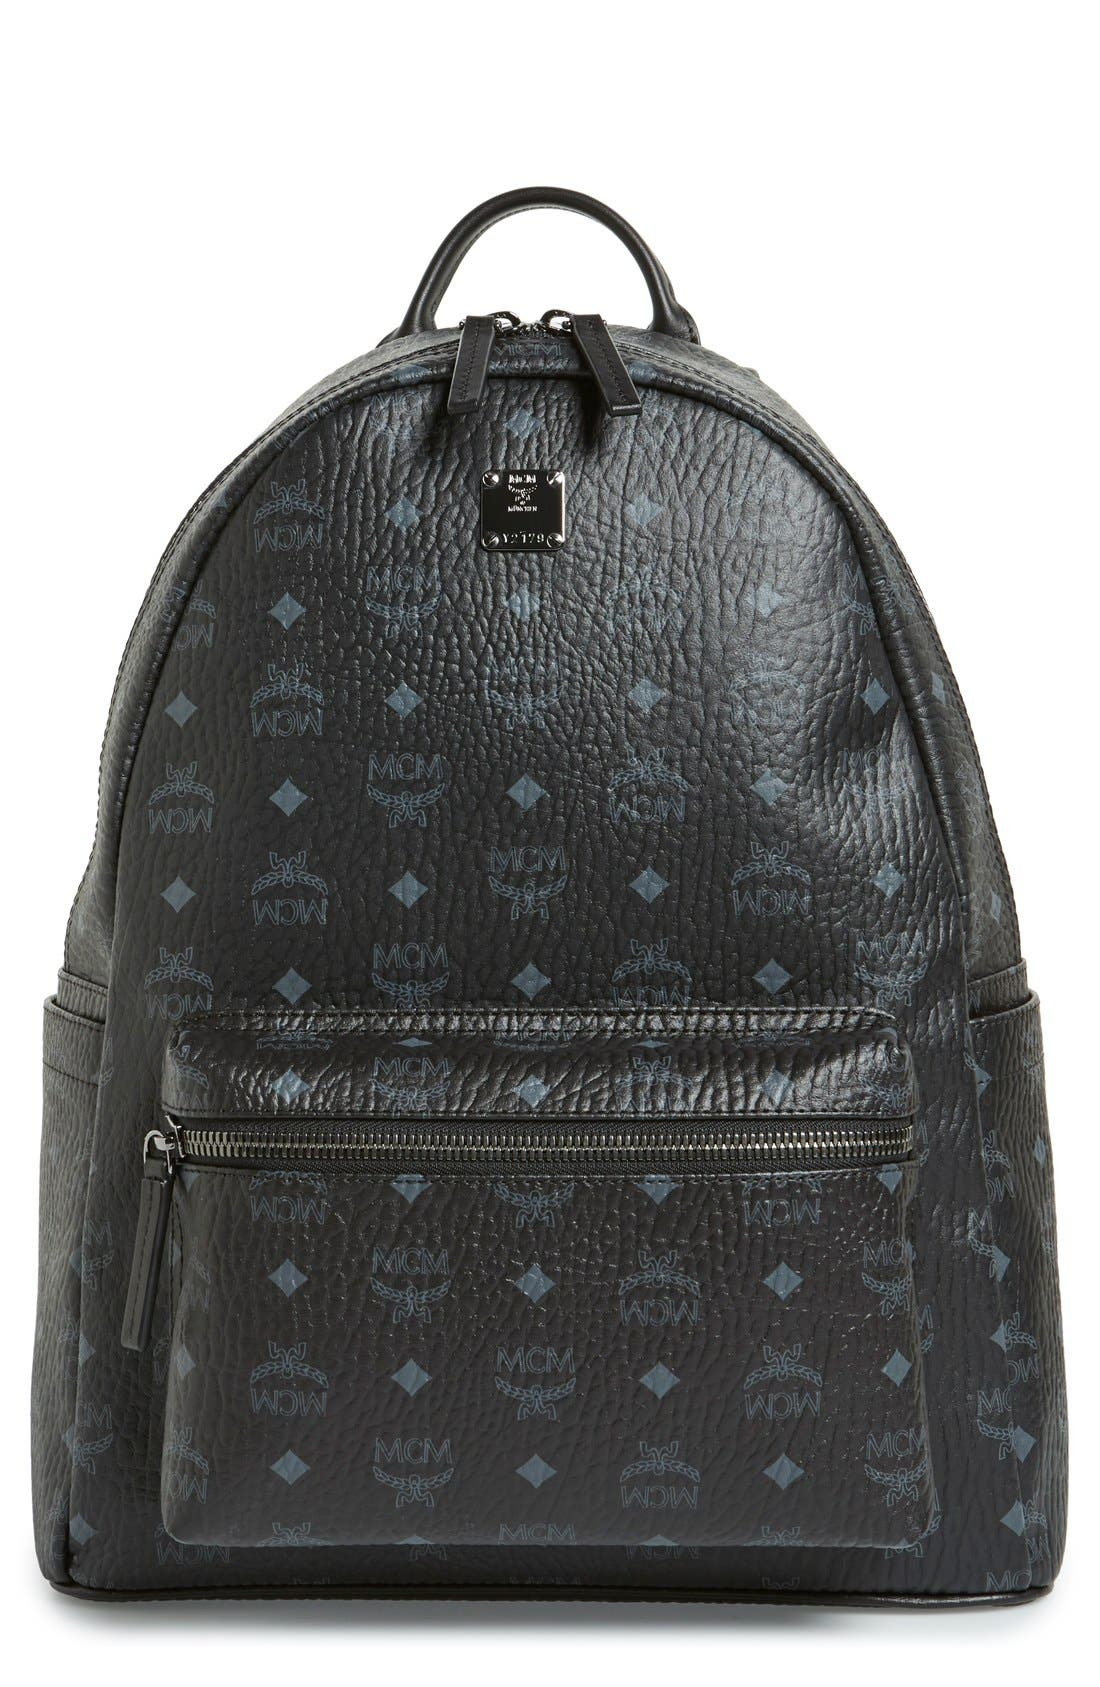 MCM 'Medium Stark - Visetos' Backpack